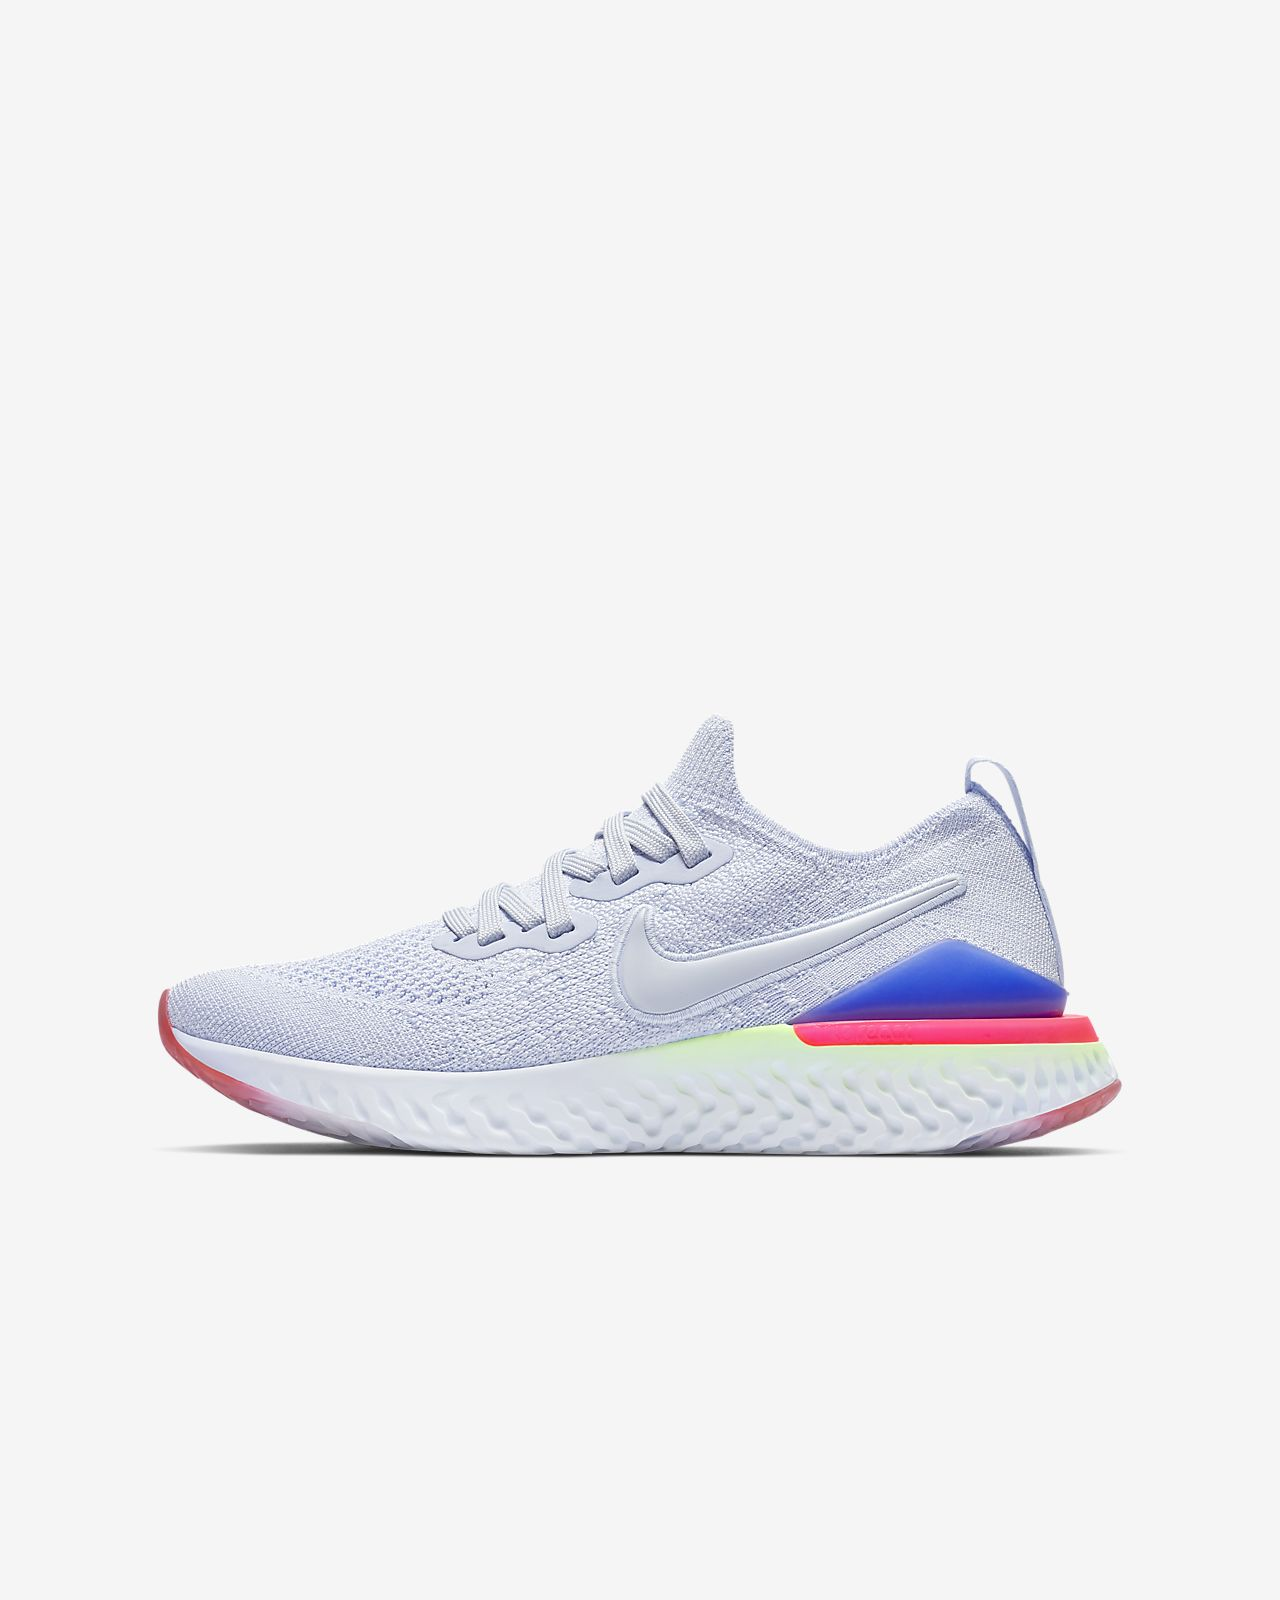 the best attitude 0b241 85f96 ... Nike Epic React Flyknit 2 løpesko til store barn